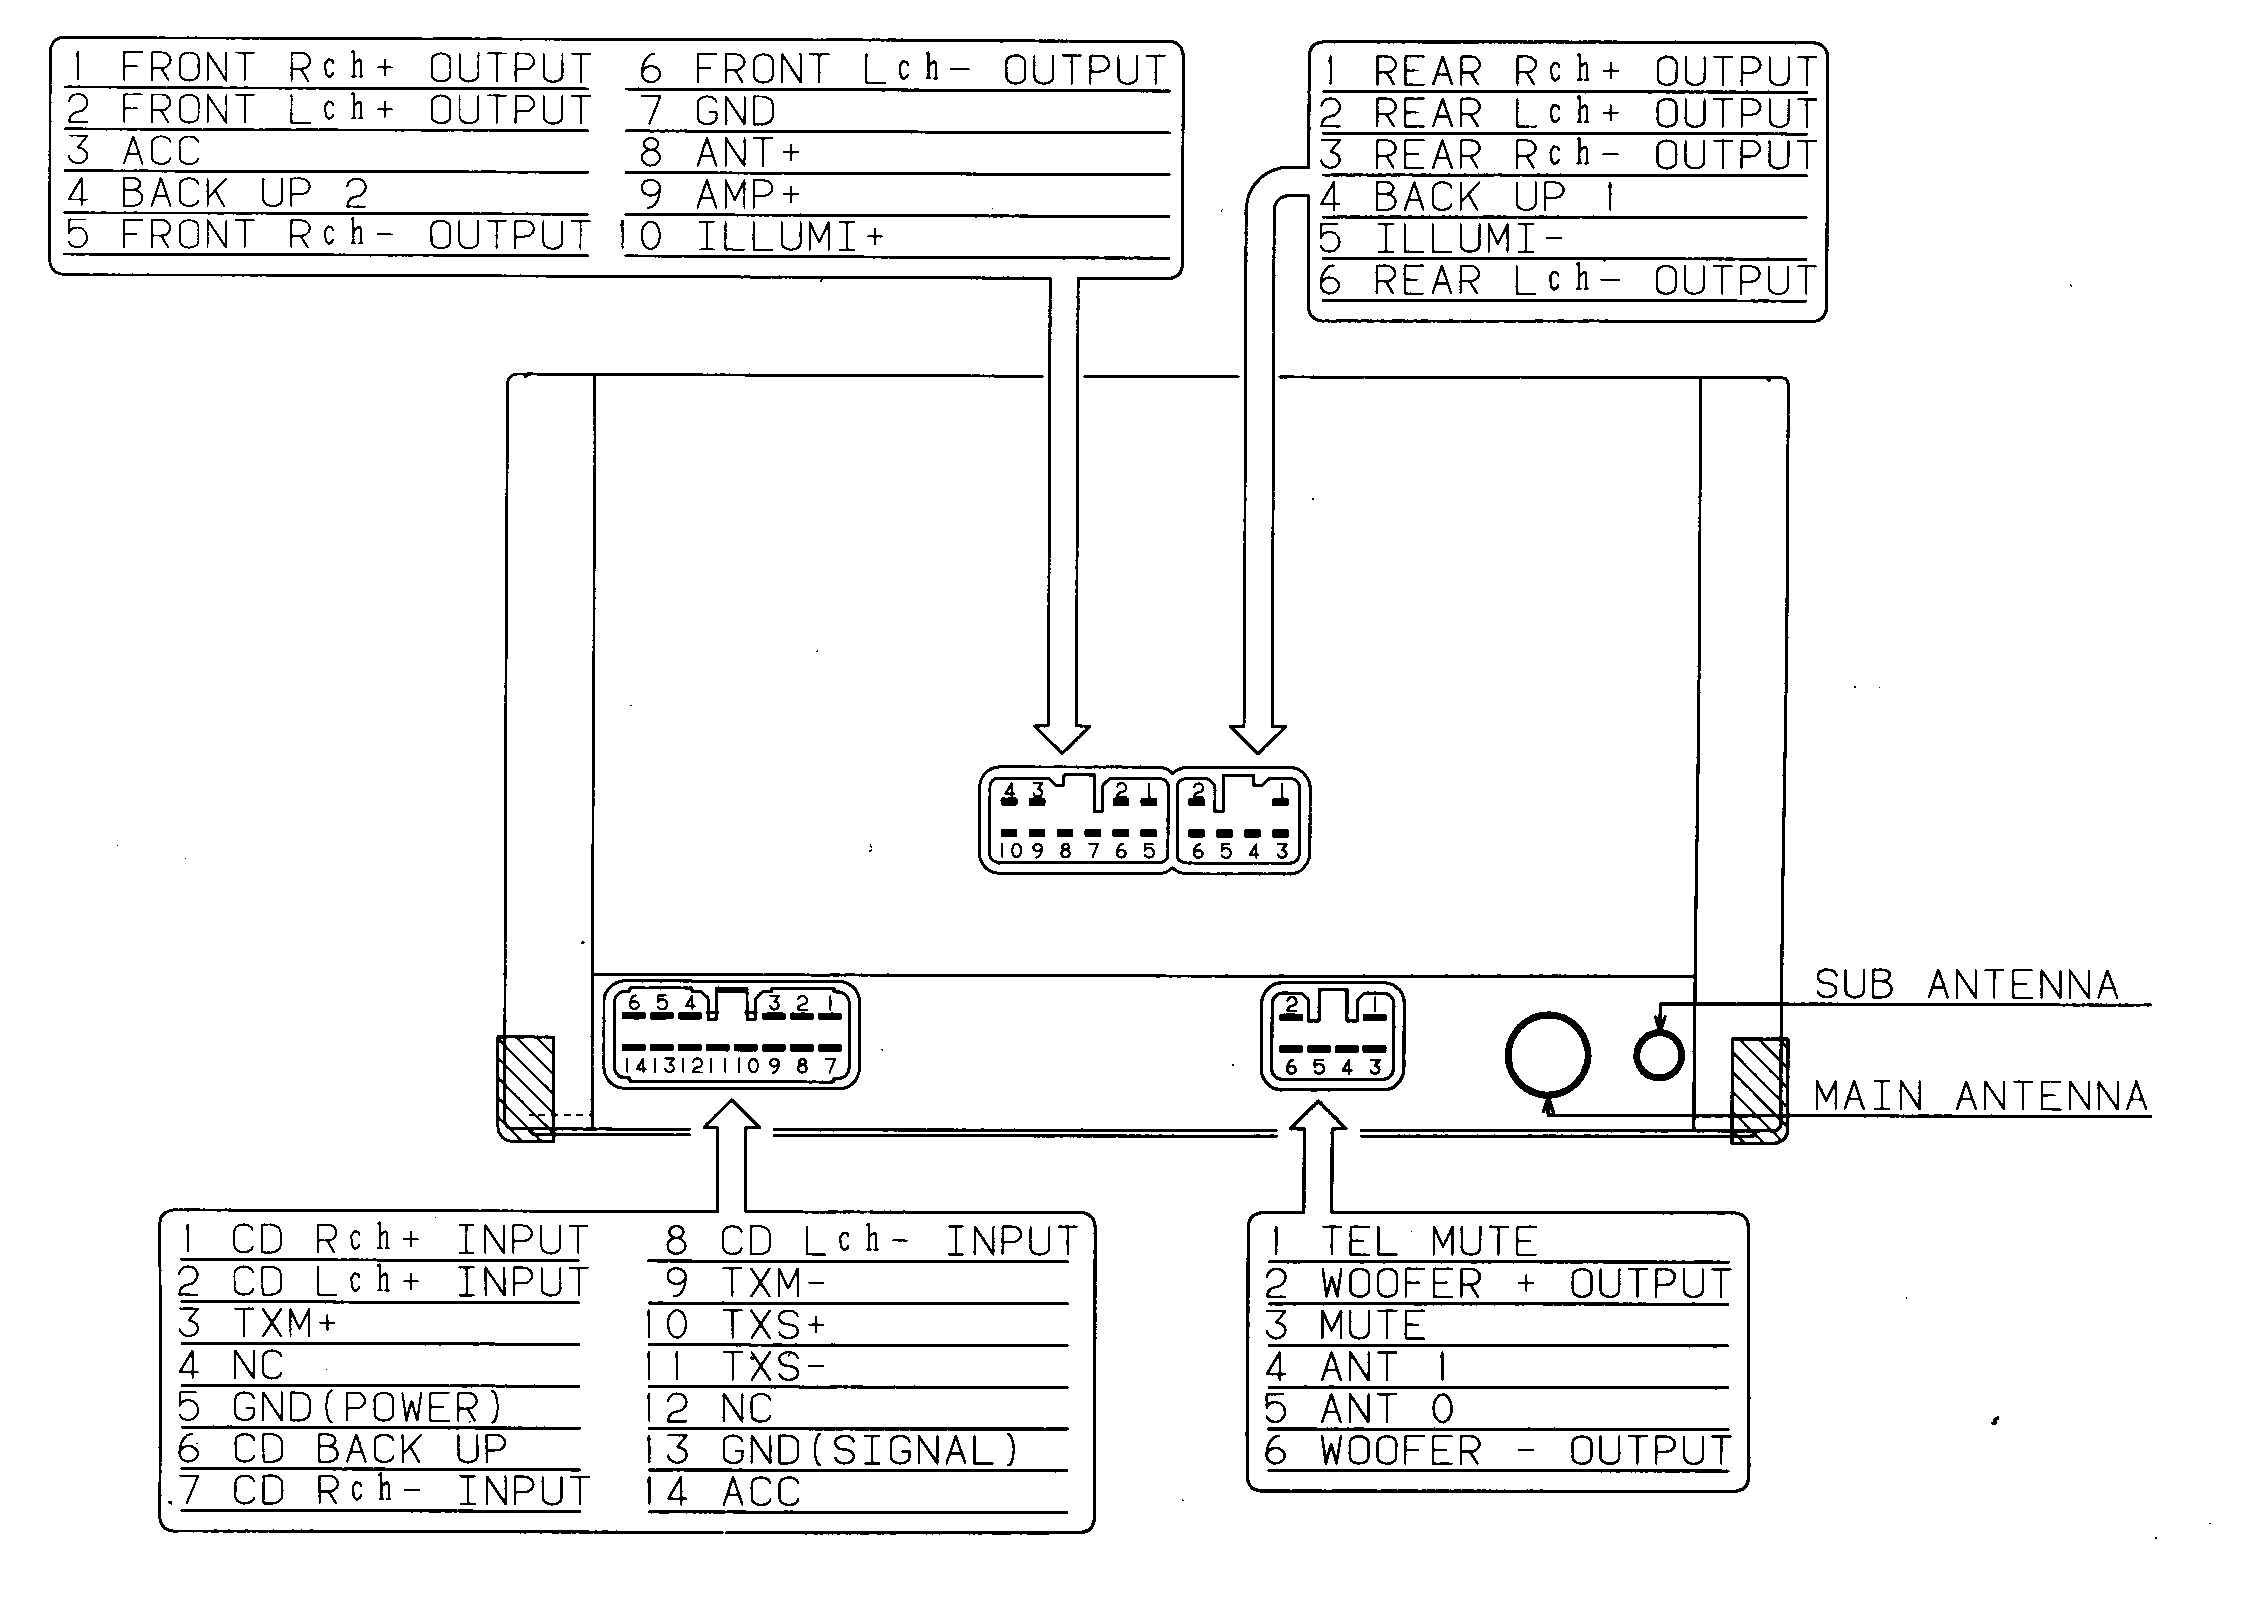 Lexus car stereo wiring diagram harness pinout connector wire nissan almera ecu pinout nissan 350z wiring diagram with daihatsu ecu wiring diagram at gsmportal.co